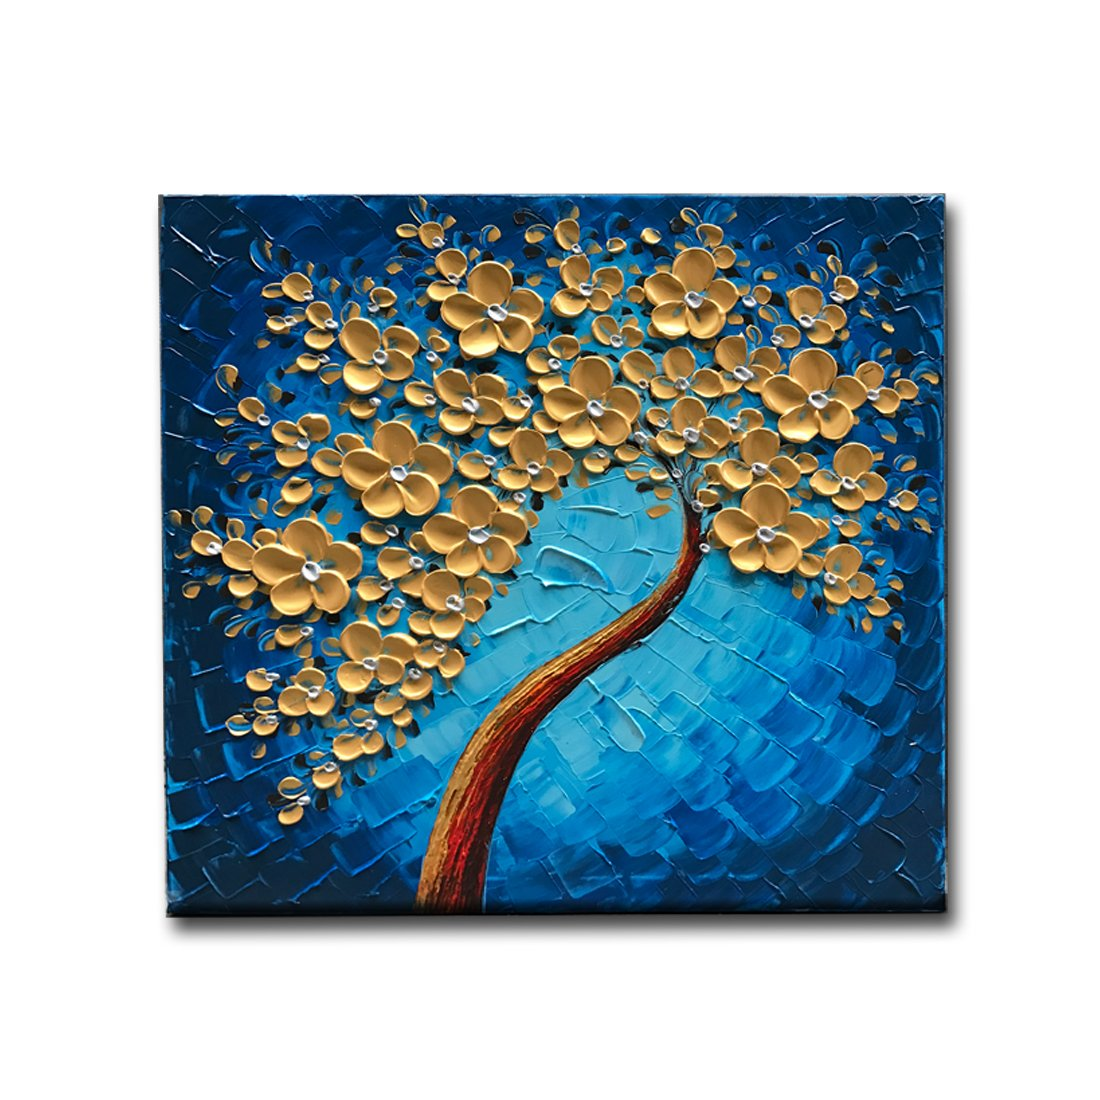 Okbonn-3D Blue and Gold Flowers Oil Painting Abstract Modern Artwork Floral Tree Squarel Wall Art On Canvas For Living Room Bedroom Office Home Decor Framed Art(24X24 inch)